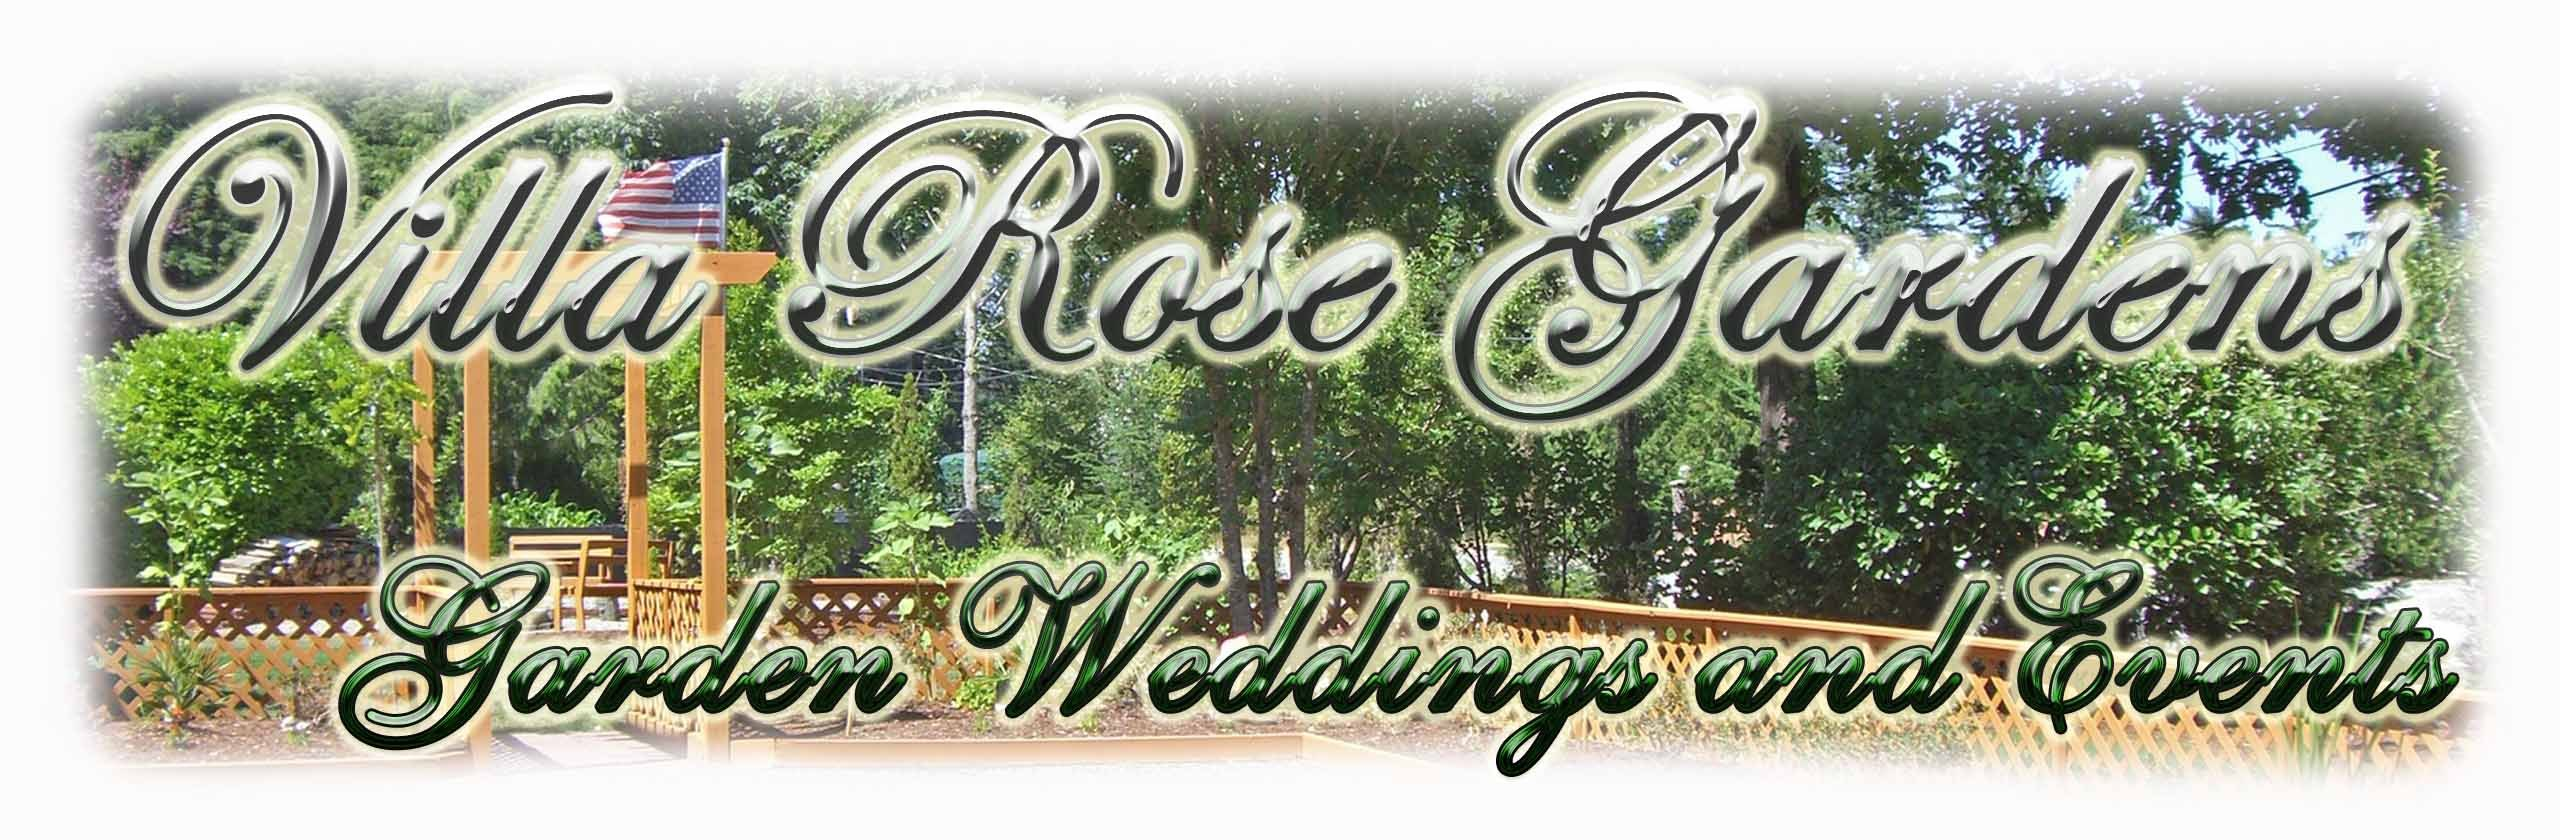 Ceremony, Flowers & Decor, Garden, Wedding, Vows, Of, Weddings, Engagement, Officiant, Marriage, Inexpensive, Ceremonies, Affordable, Engage, Cheap, Minister, Small, Vow, Renewal, Reverend, Intimate, Renewals, Marry, Ordained, Villa rose gardens